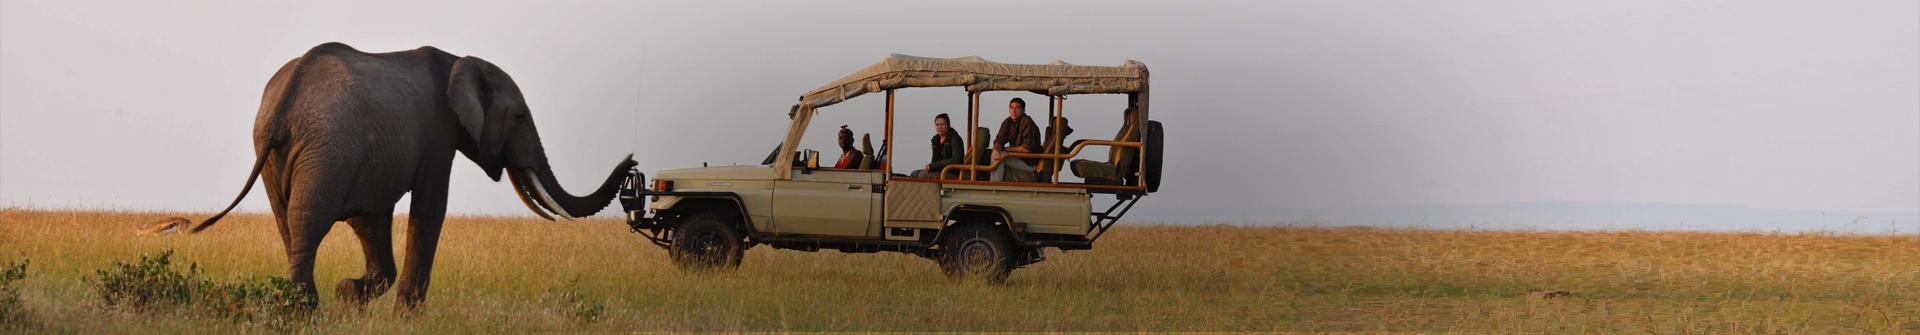 Maasai Mara 2020 travel deals